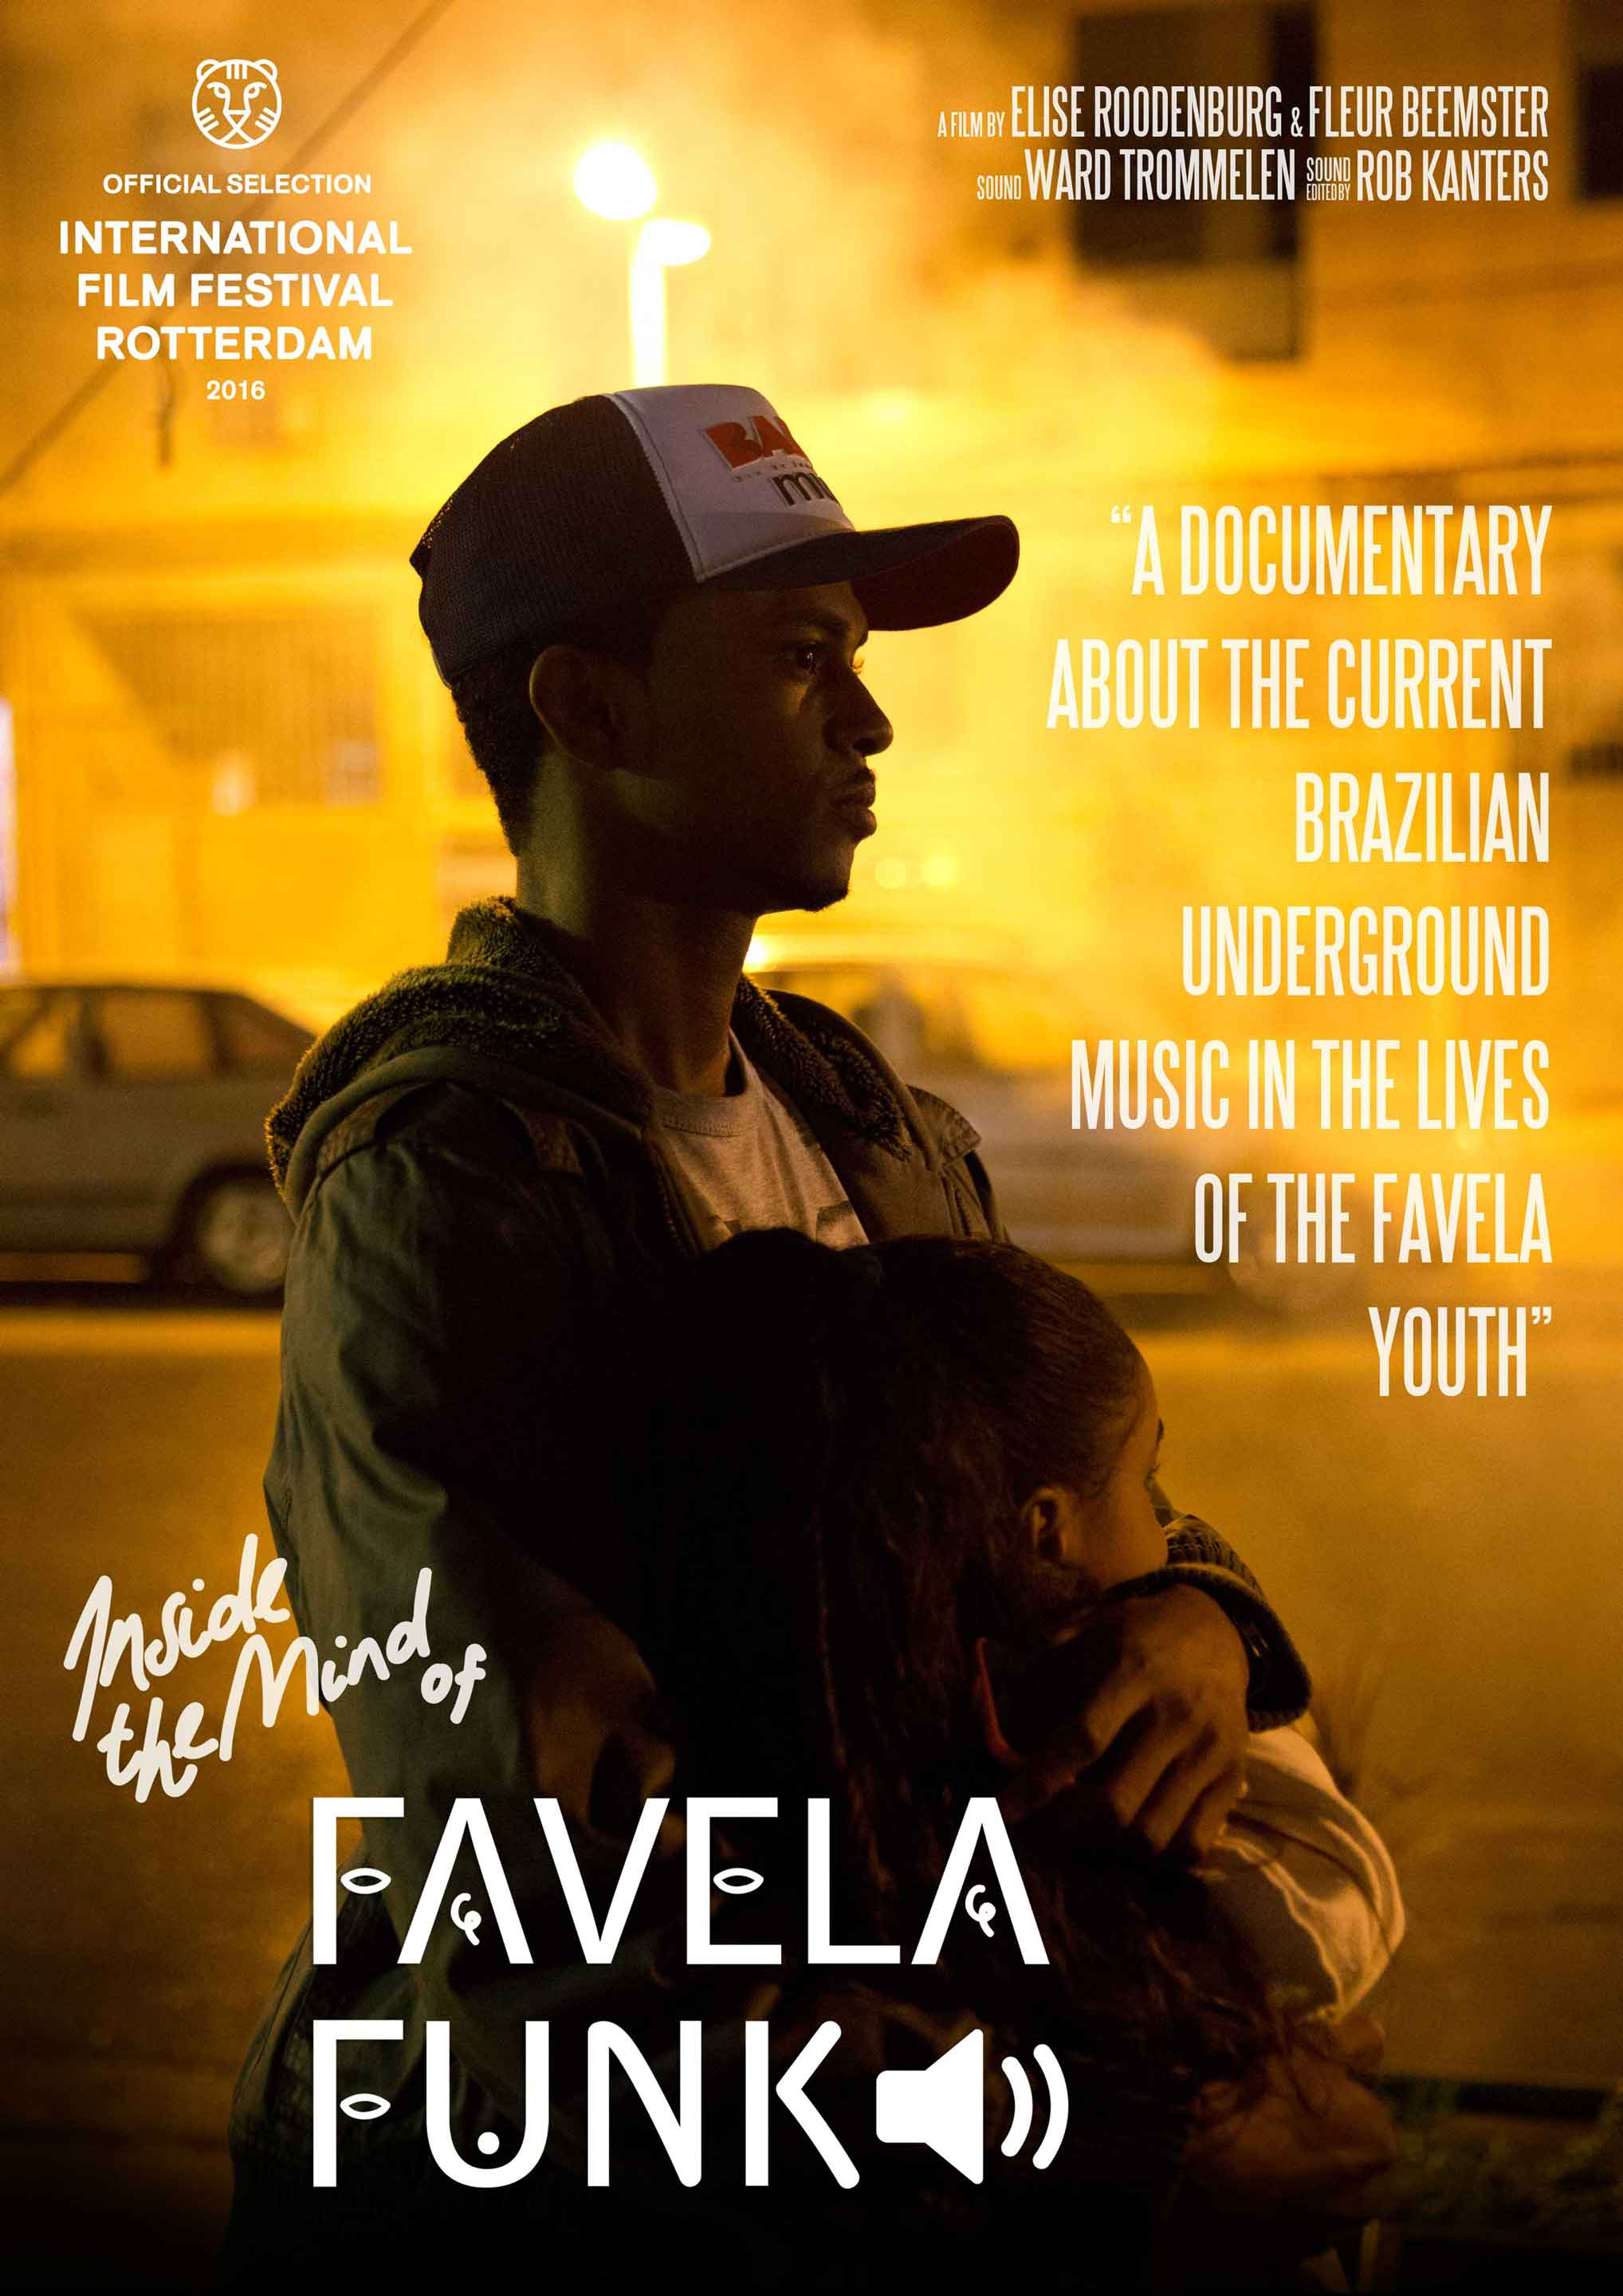 Inside-the-Mind-of-Favela-Funk-Filmposter